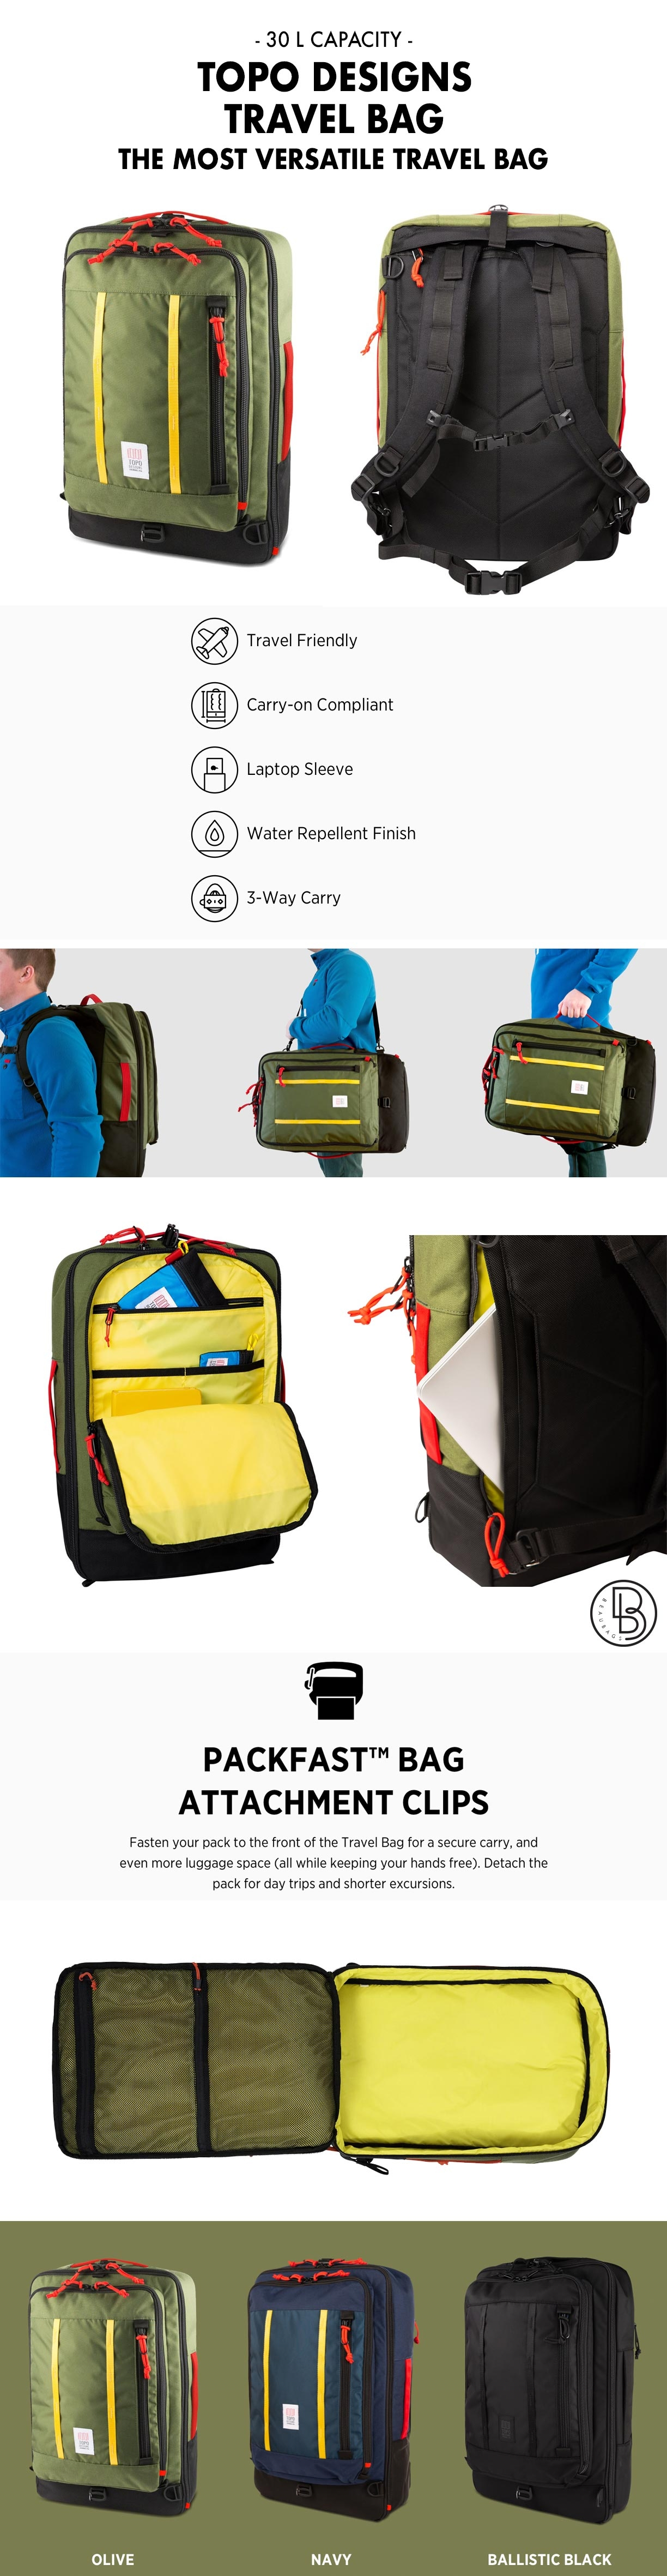 Topo Designs Travel Bag product information